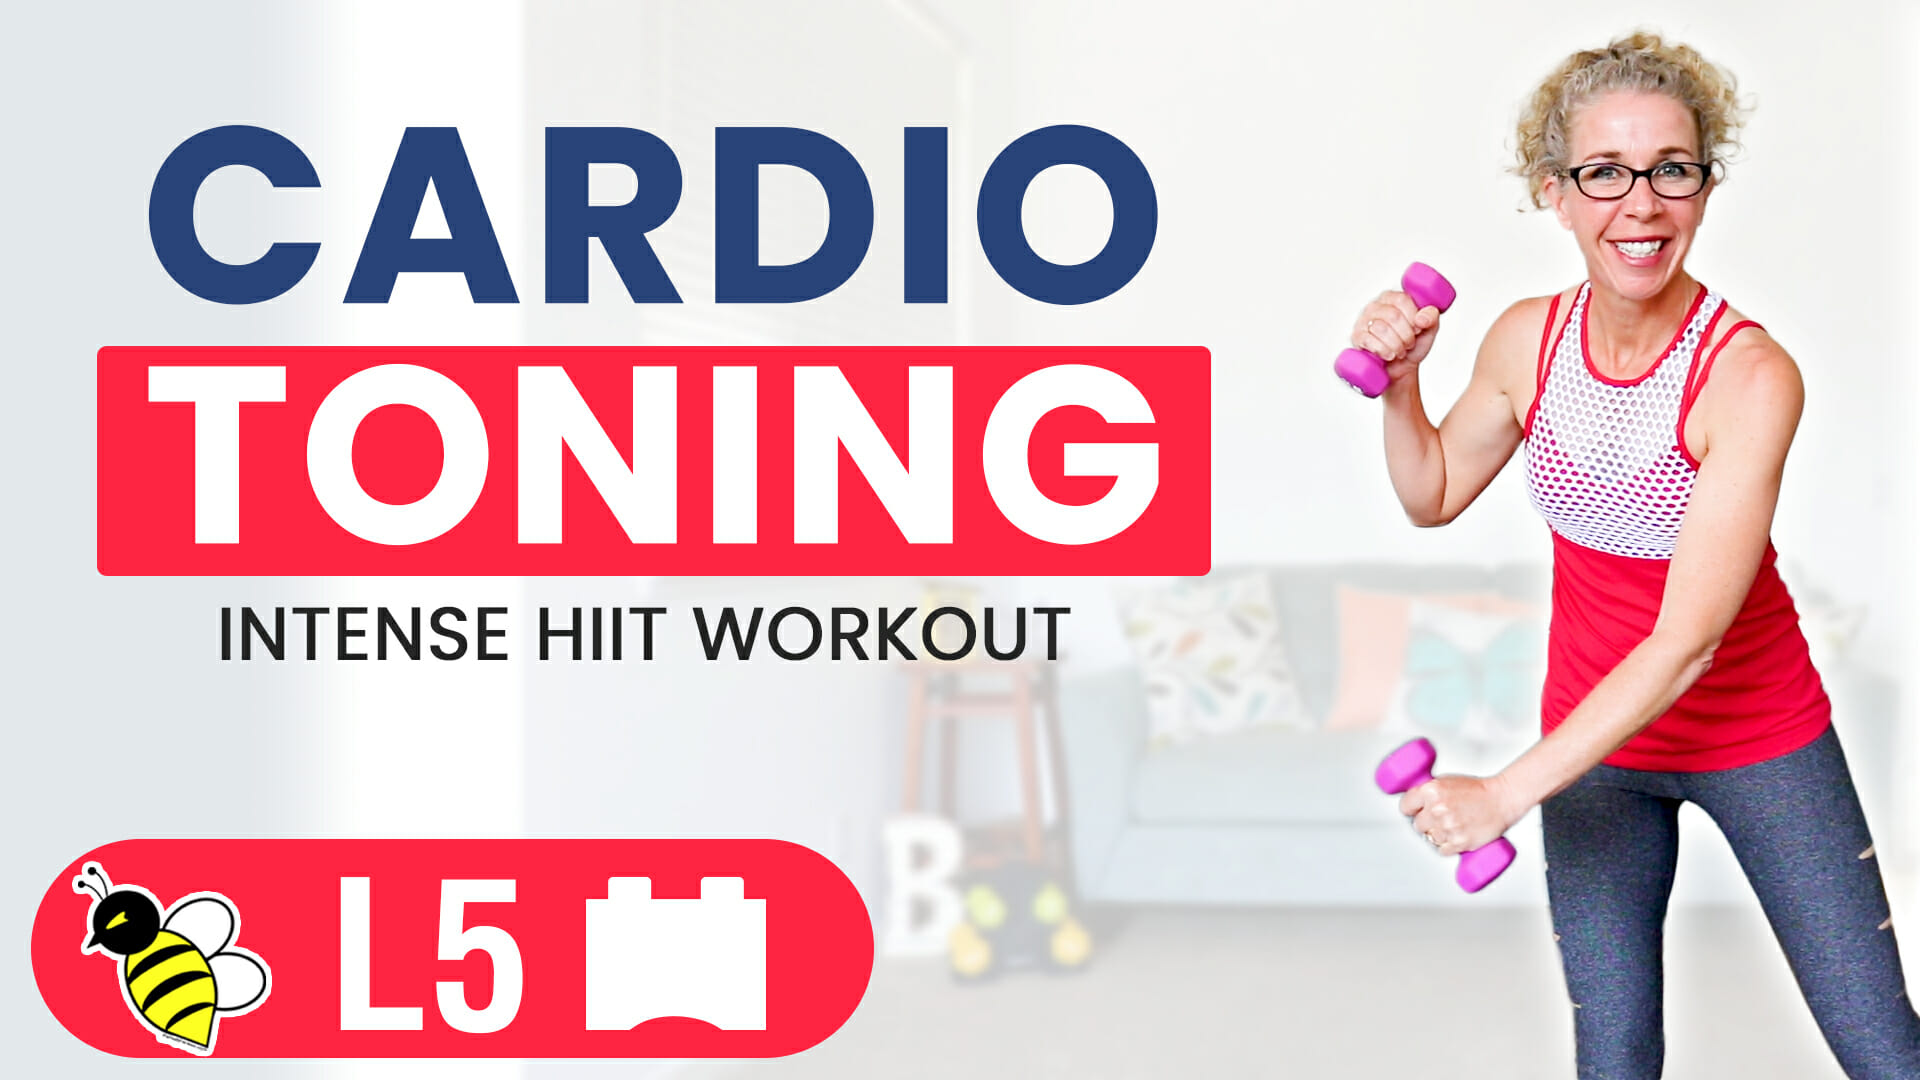 10 Minute INTENSE Cardio Toning HIIT Total Body Workout with Light Dumbbells